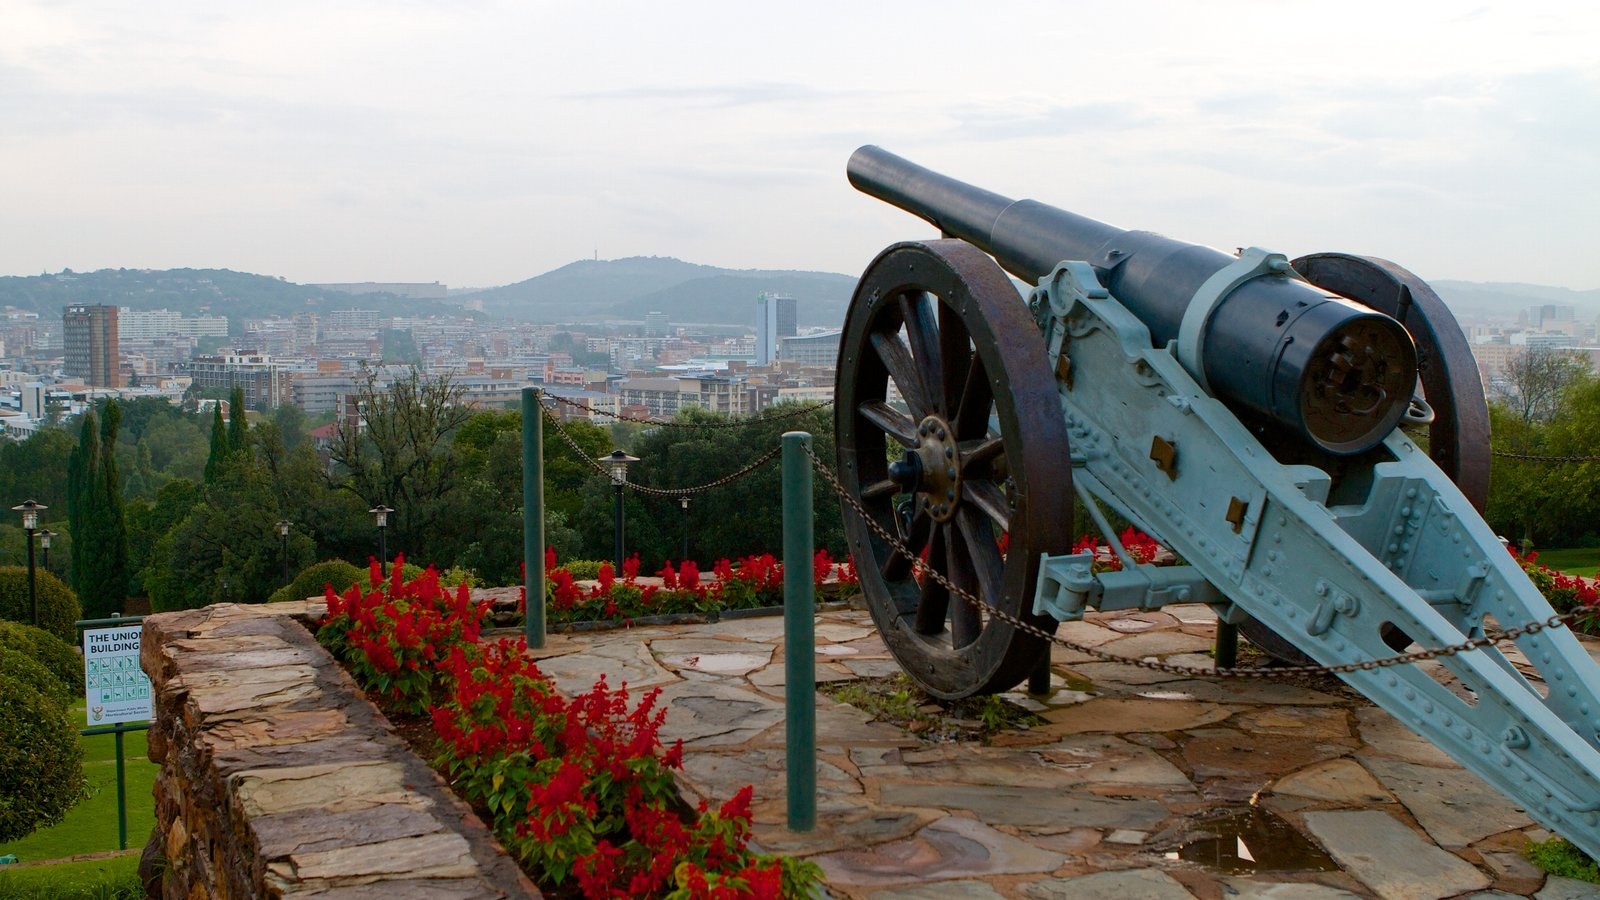 Union Buildings featuring military items, heritage elements and flowers